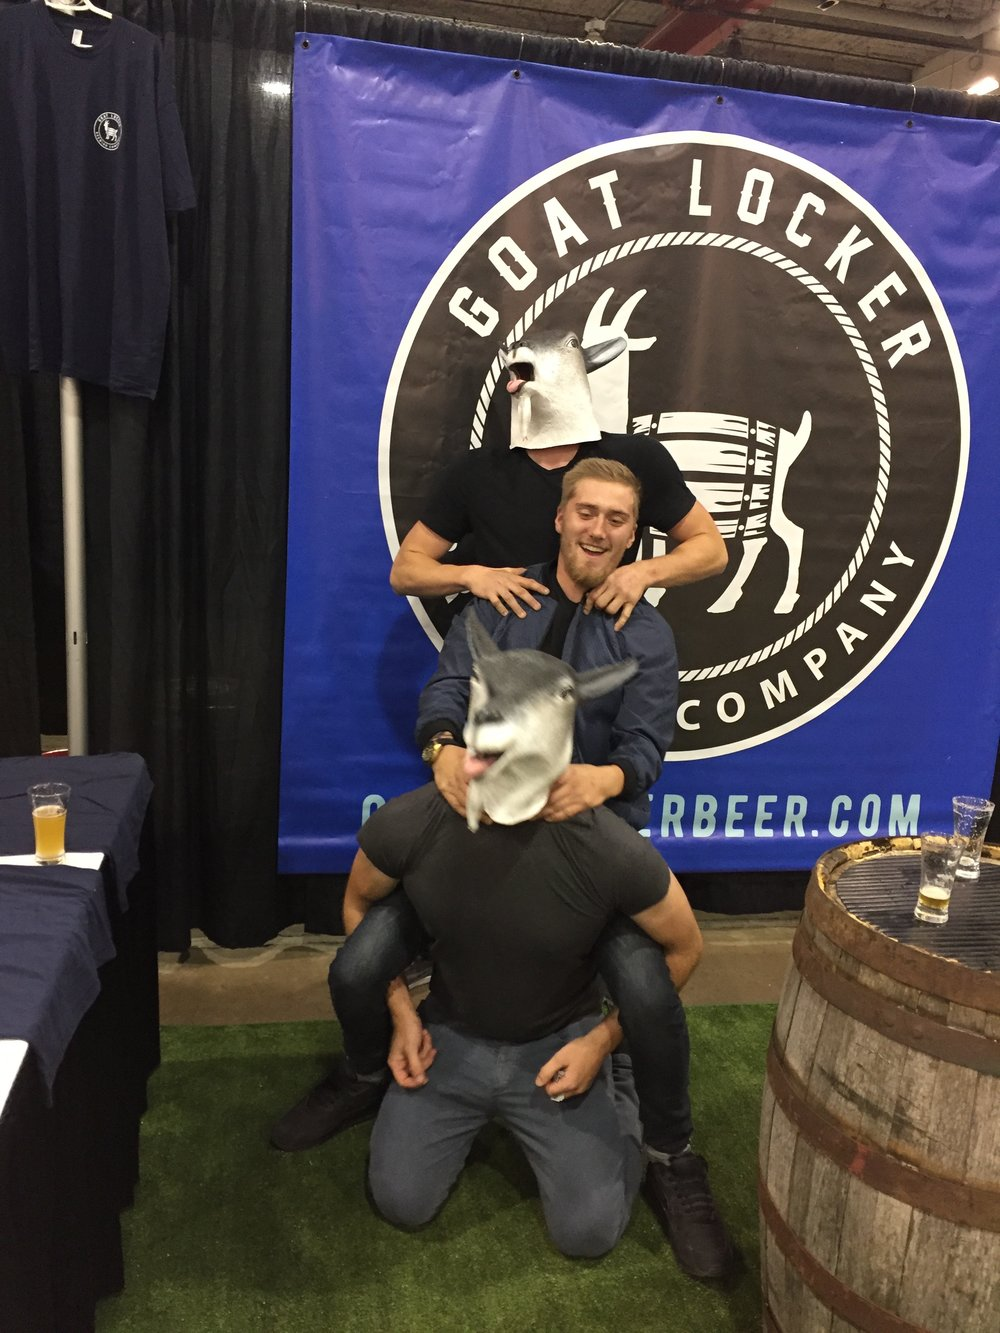 Goat Locker Brewing Company